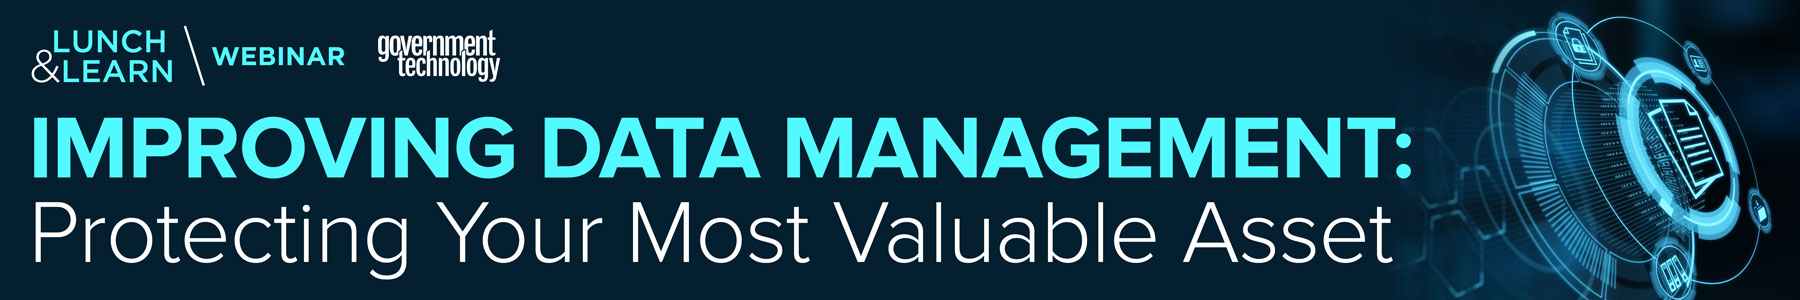 Improving Data Management: Protecting Your Most Valuable Asset